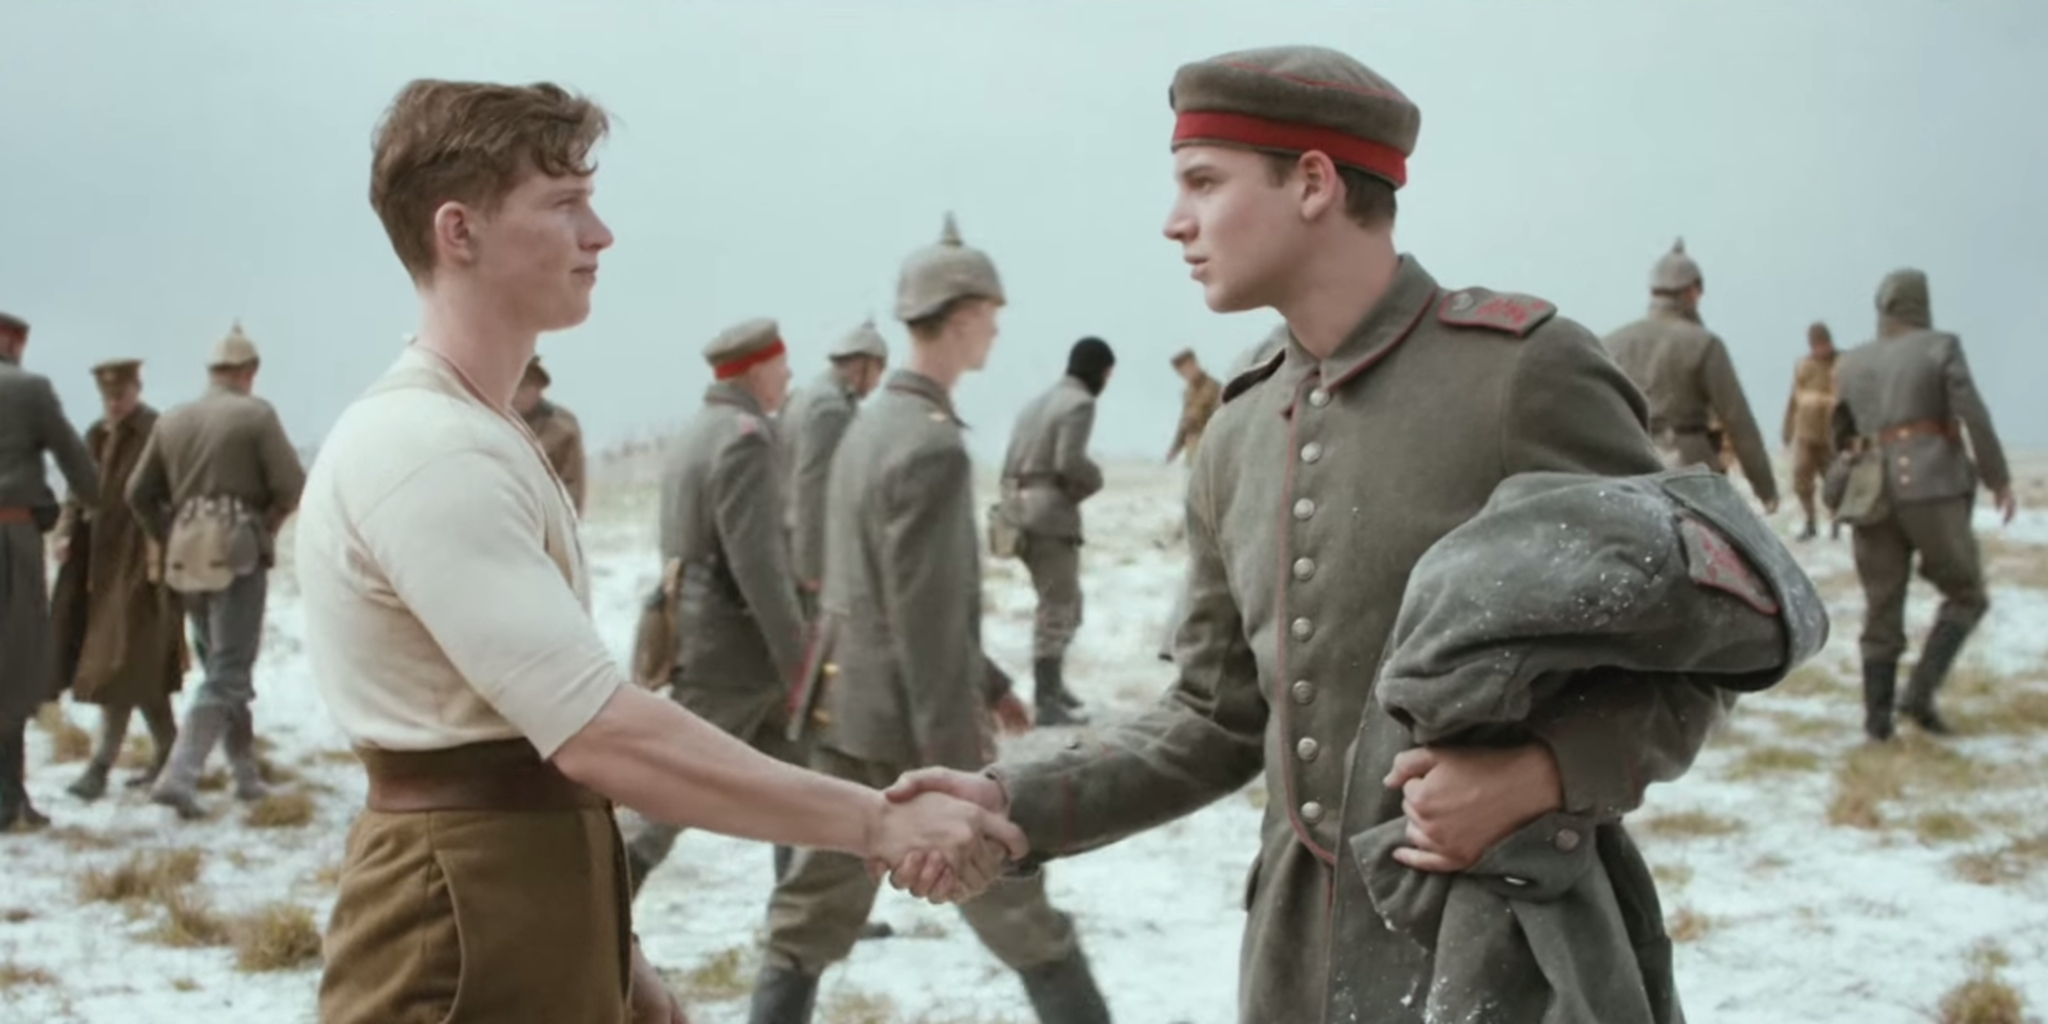 A British grocery chain made a commercial featuring World War I's ...